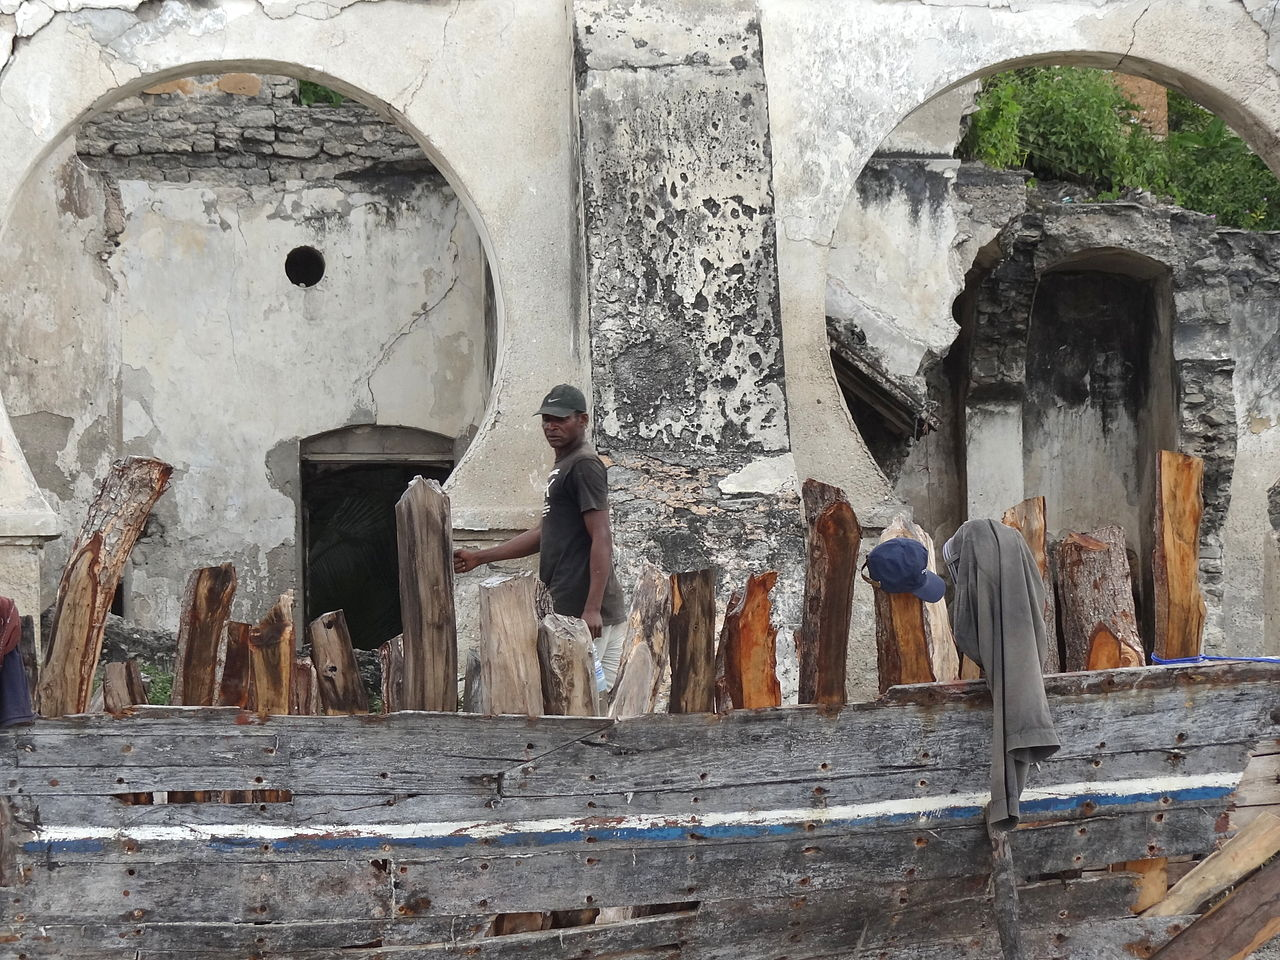 Bagamoyo Tanzania  City pictures : ... under Repair with Passing Man Fishing Port Bagamoyo Tanzania